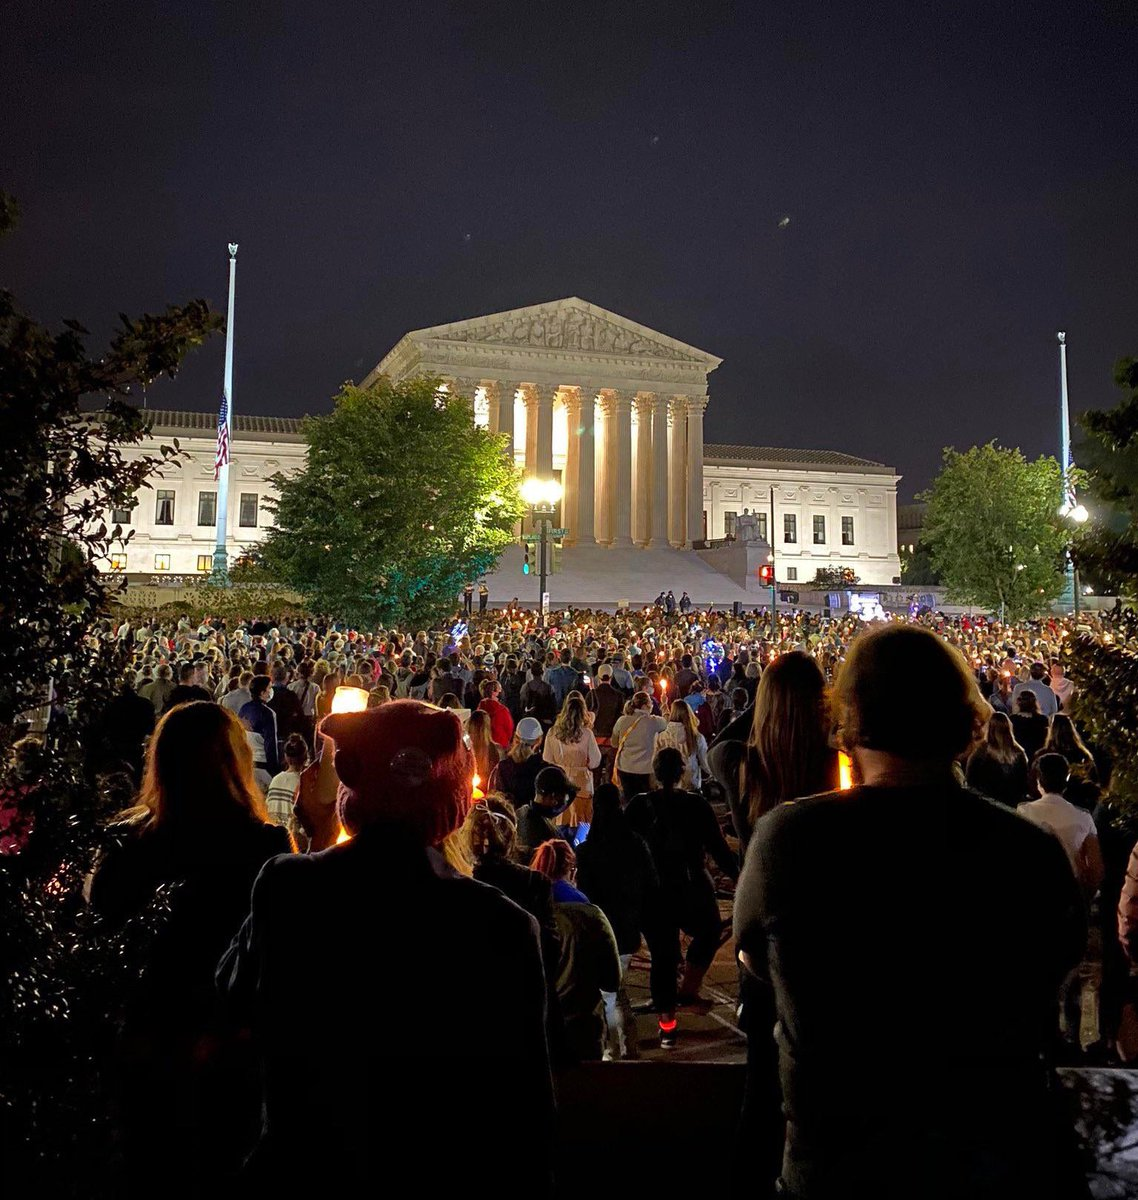 The scene at the U.S. #SupremeCourt at #RBG's vigil. Unprecedented #RuthBaderGinsberg #SundayThoughts #SundayFeels #RBGLegacy https://t.co/aZElCxtXCH